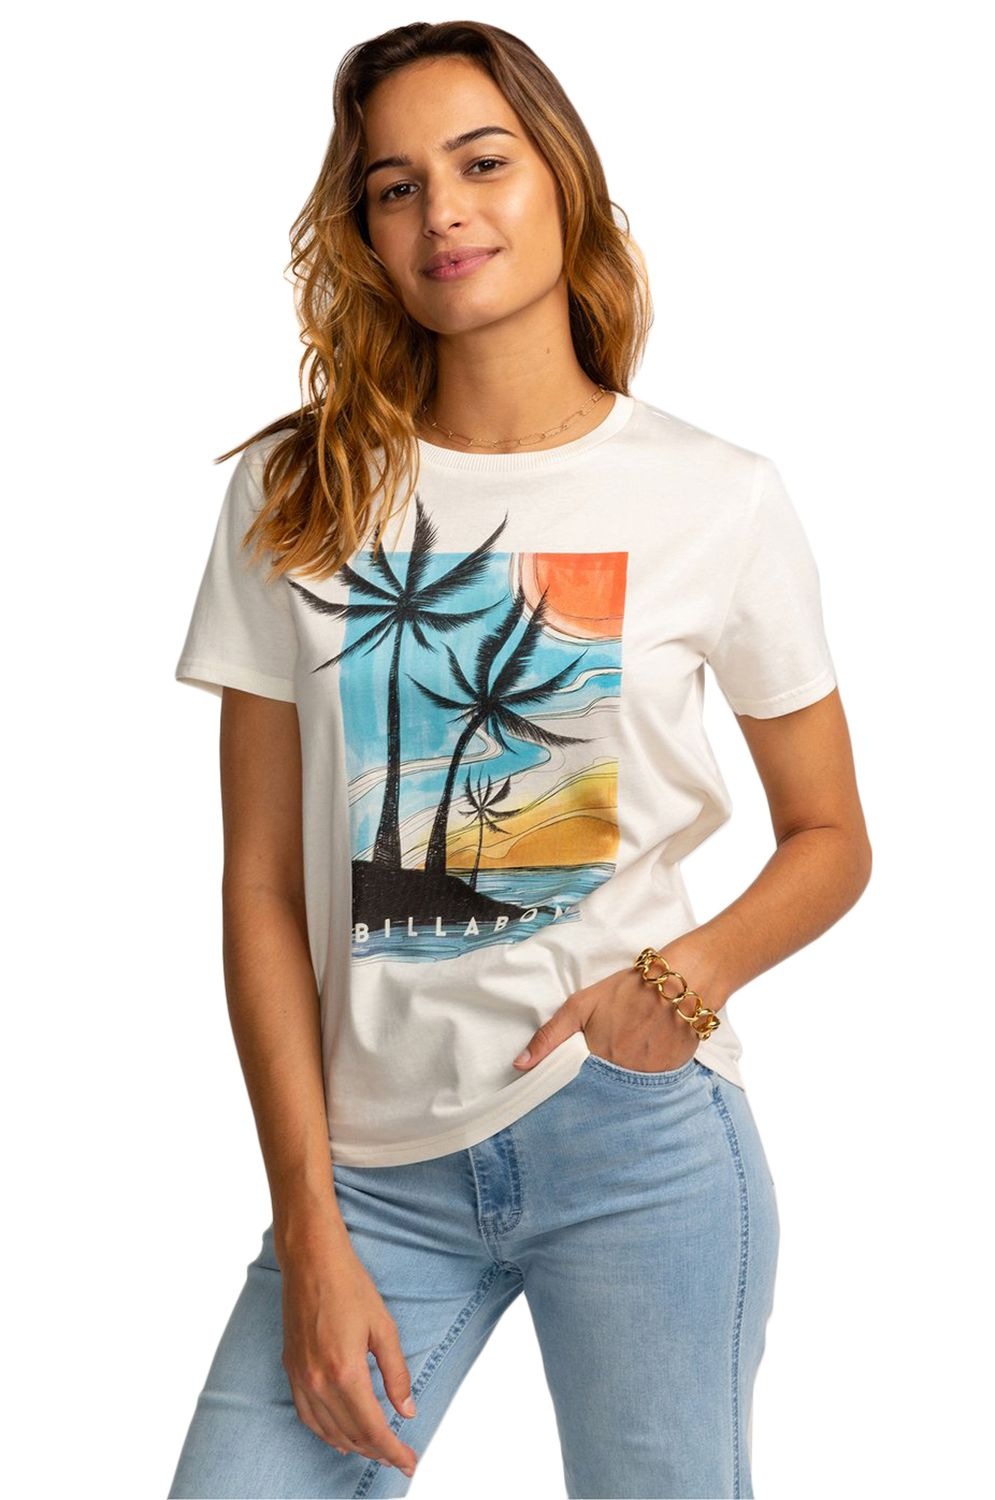 Billabong T-Shirt ISLA PALMA Cool Wip